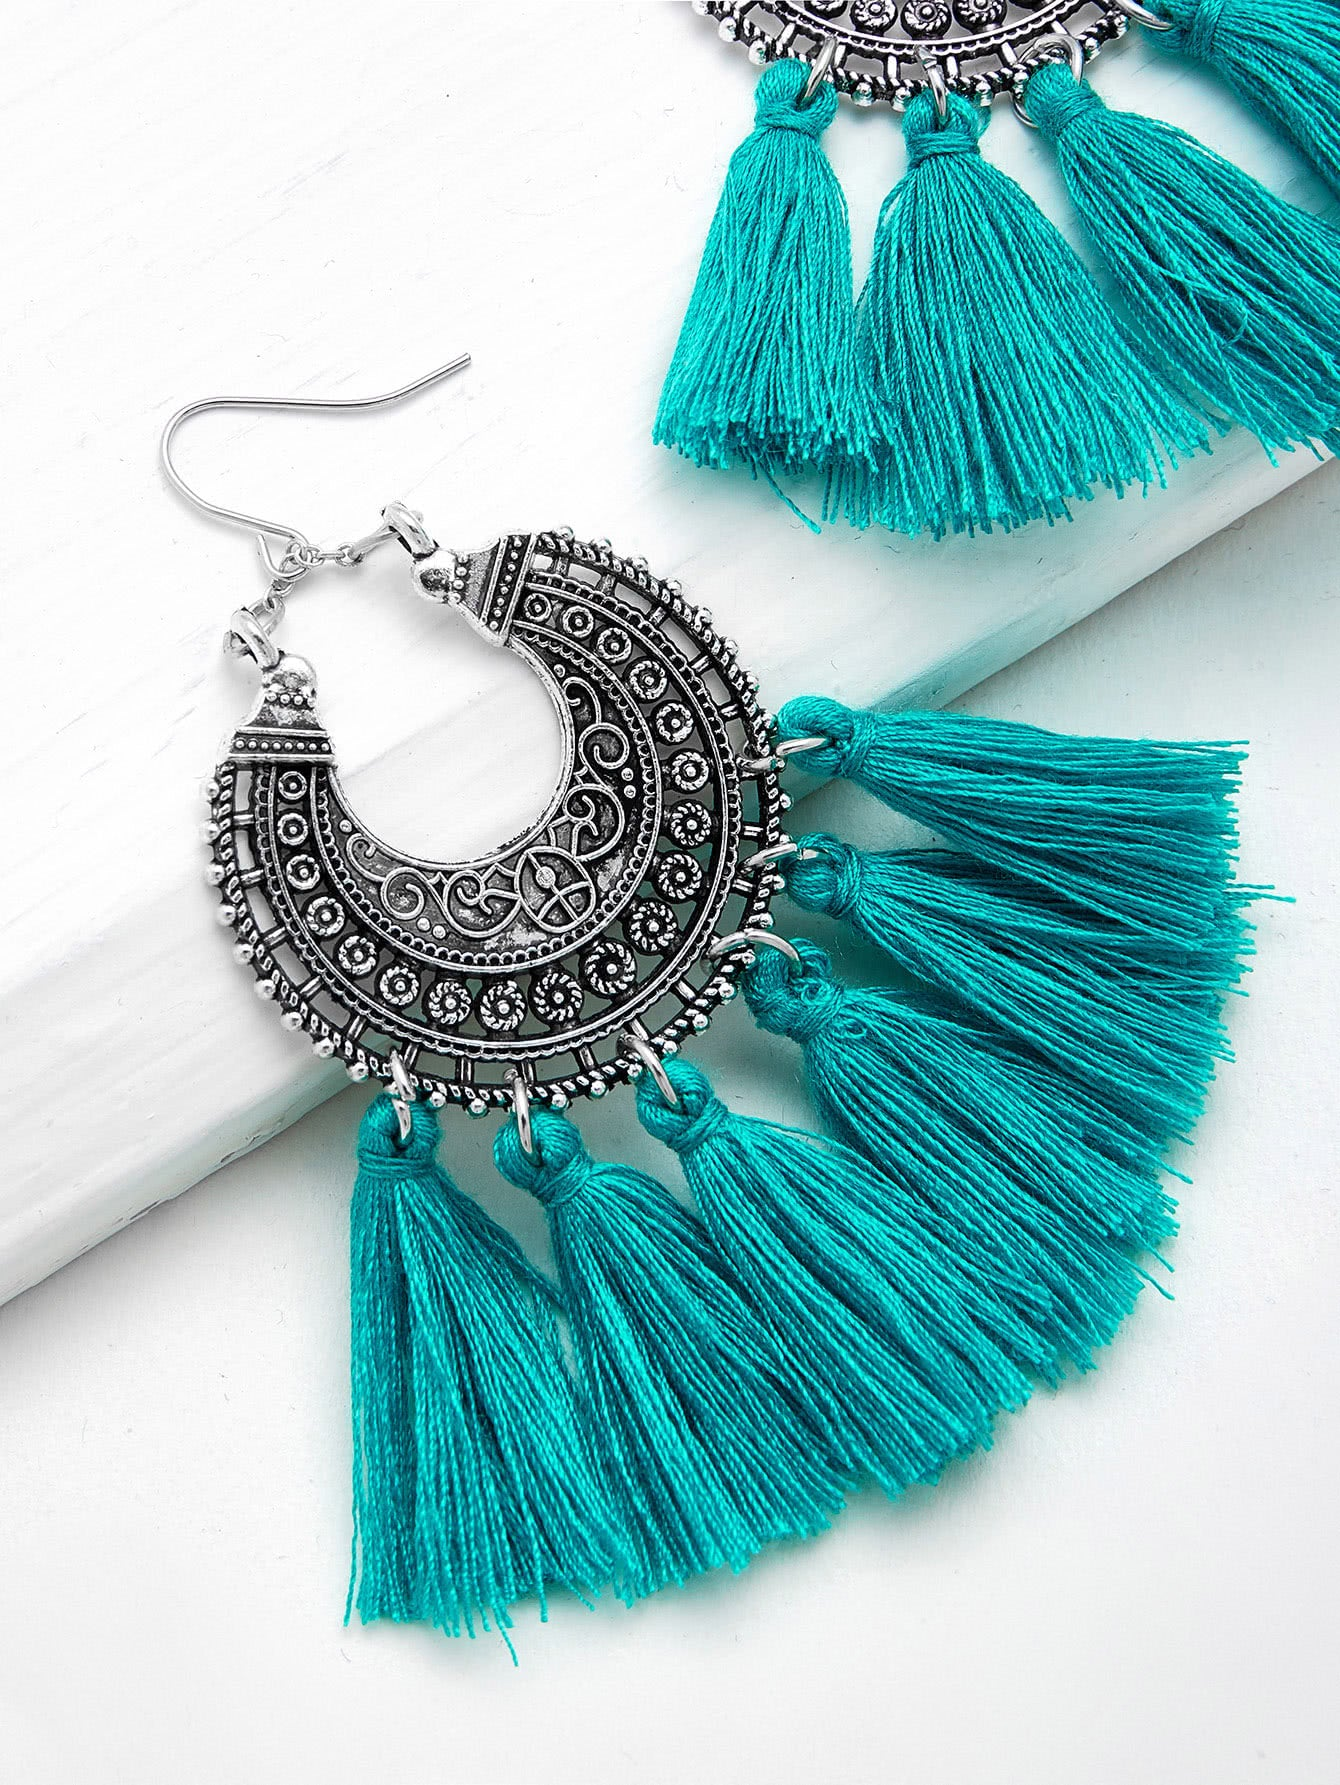 Blue Horizon Etched Earrings w/ Tassels - Silver/Teal